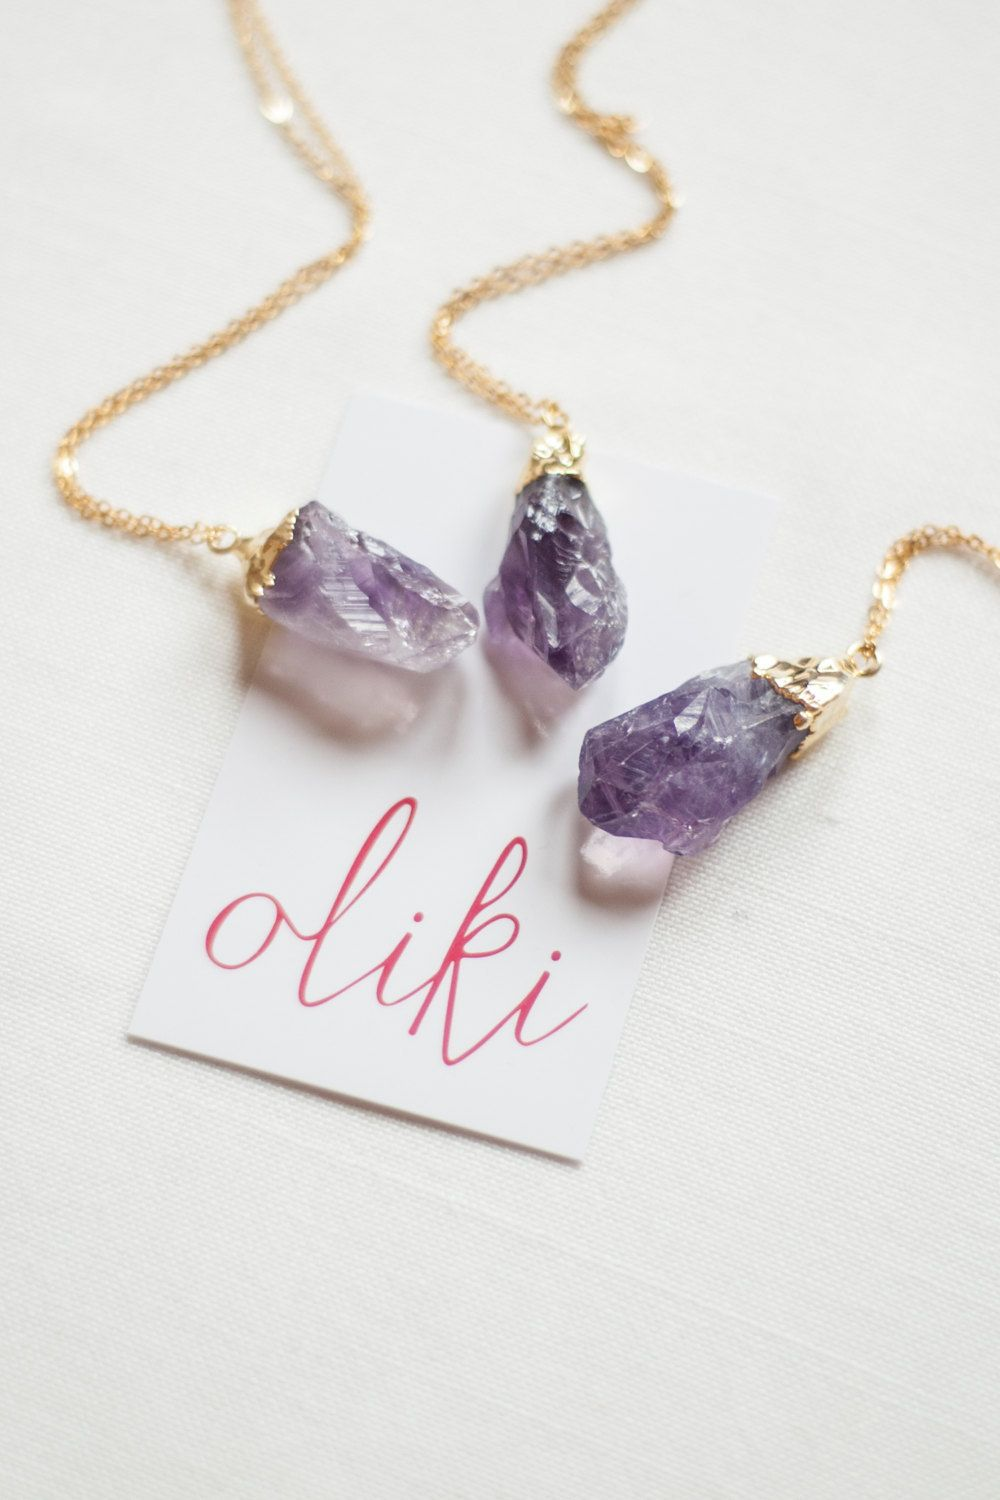 Crystal necklace amethyst necklace gemstone necklace for her mom crystal necklace amethyst necklace gemstone necklace for her mom gift sister gift girlfriend gift negle Choice Image